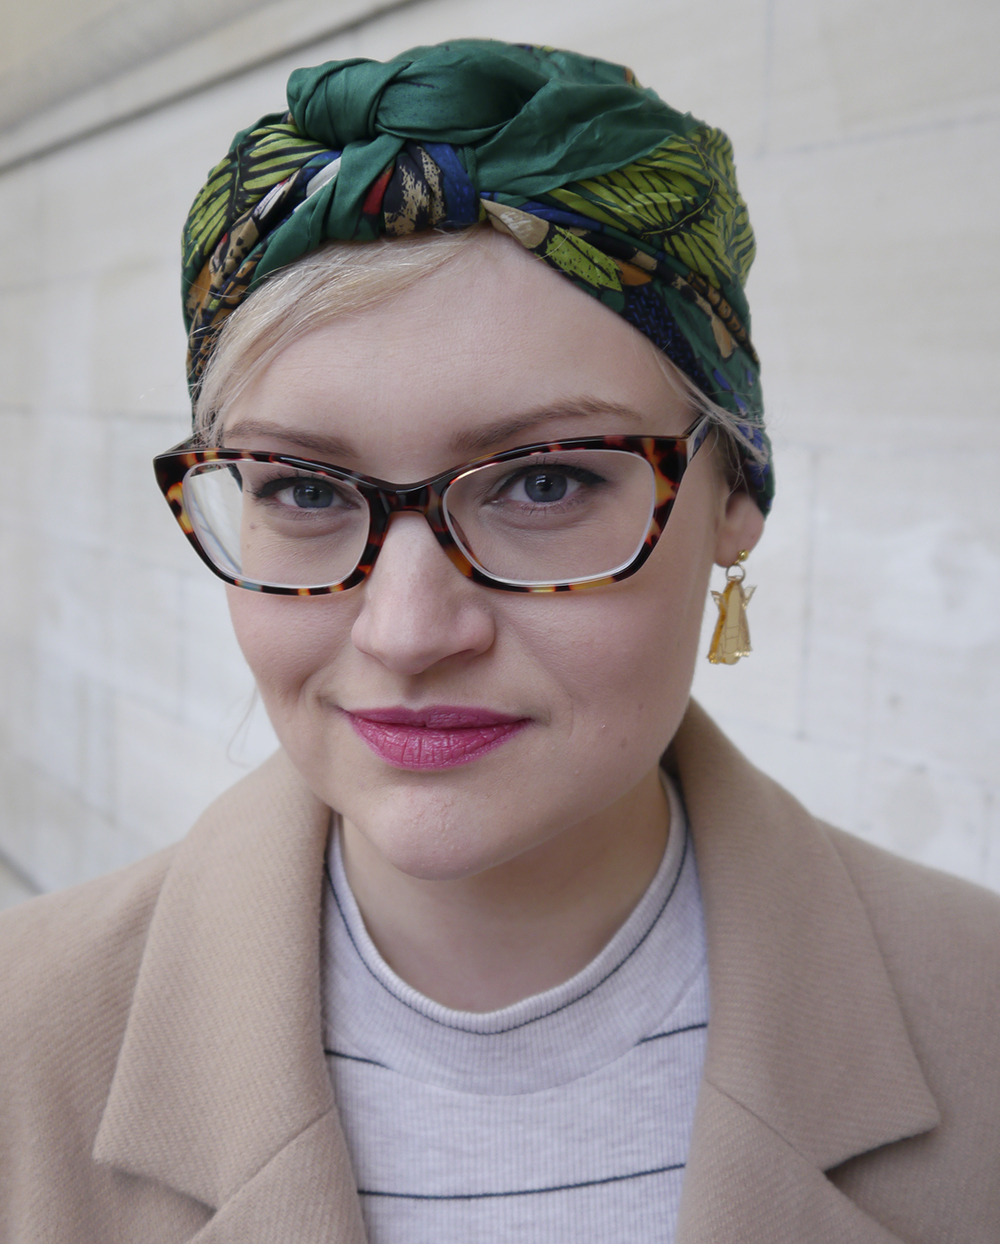 vintage fair, Lou Lou's Vintage fair, vintage shopping, Dundee, Scottish vintage fair, vintage event, vintage scarf, turban, jungle print scarf, Iolla glasses, Sugar and Vice Bee earrings, Scottish Blogger